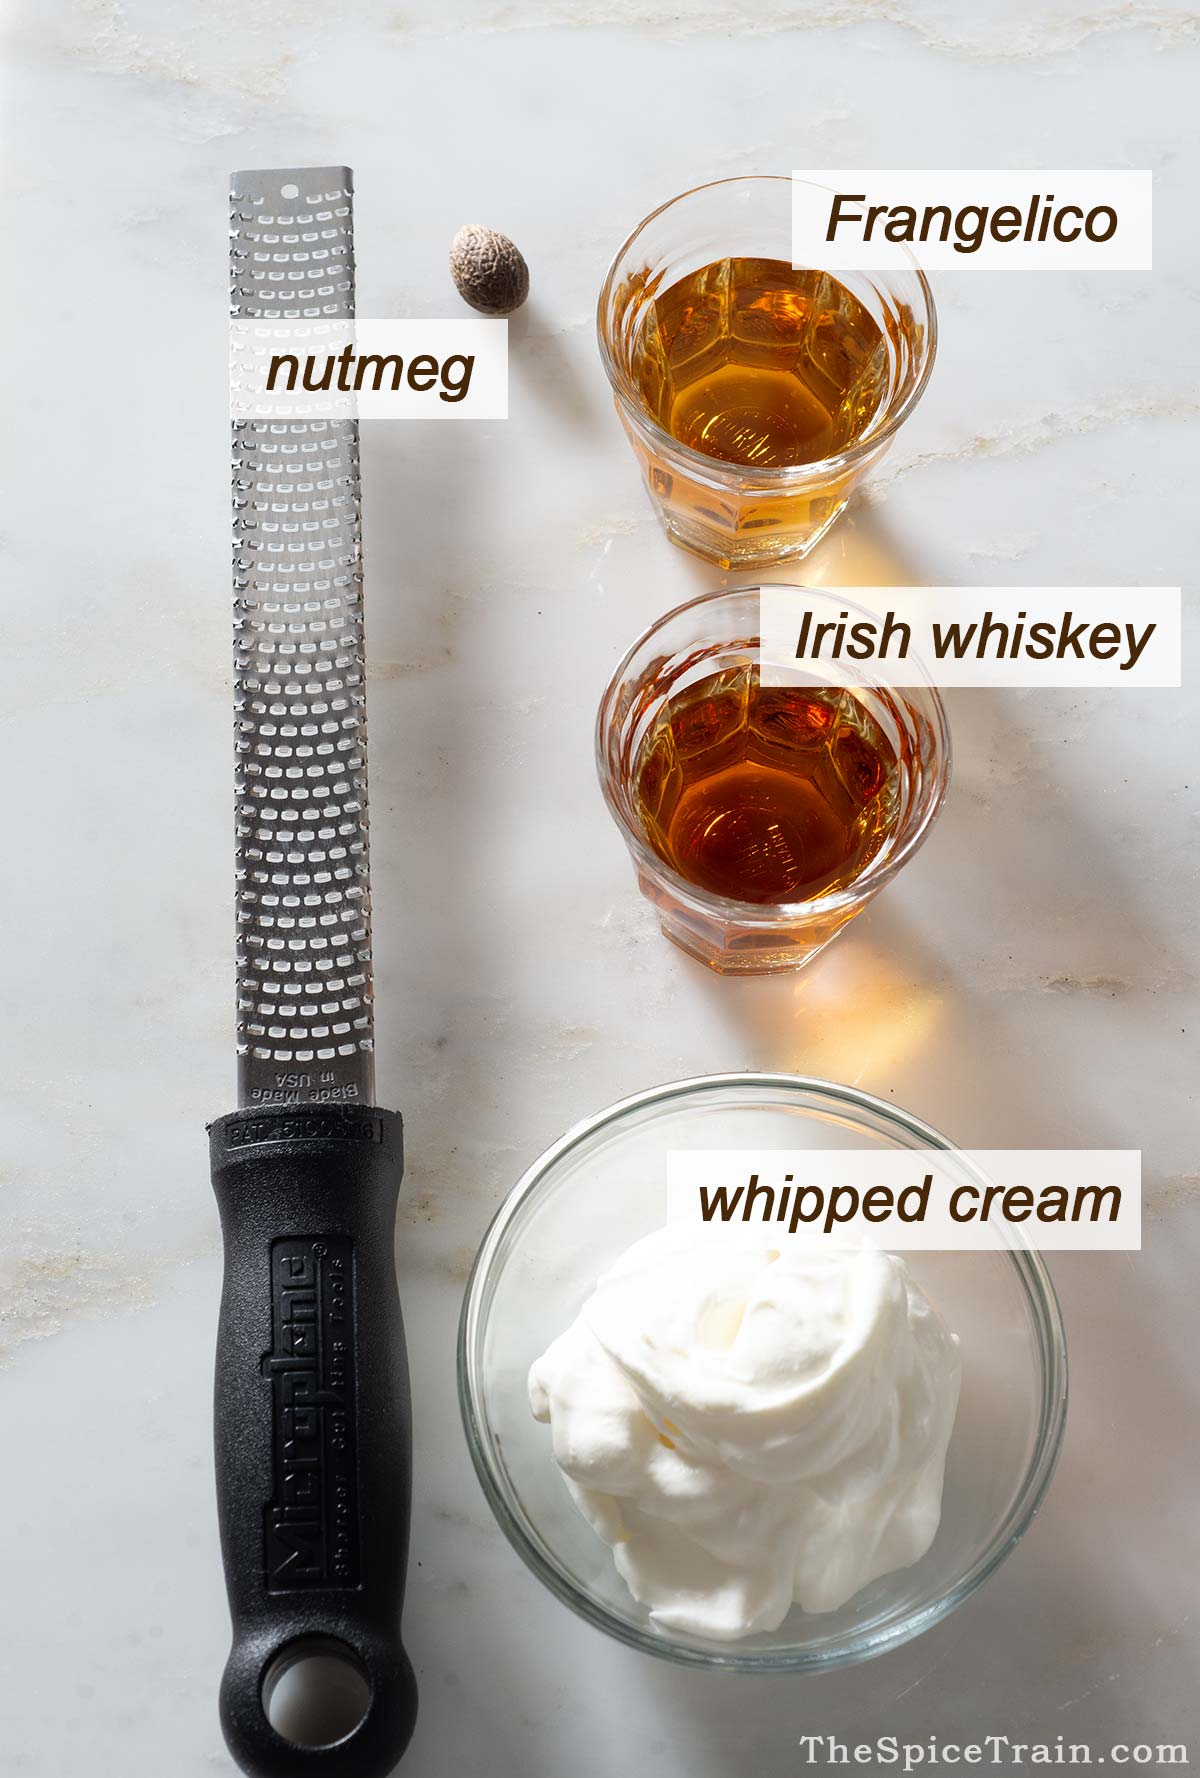 Whiskey and Frangelico cocktail ingredients with a grater on a kitchen counter.